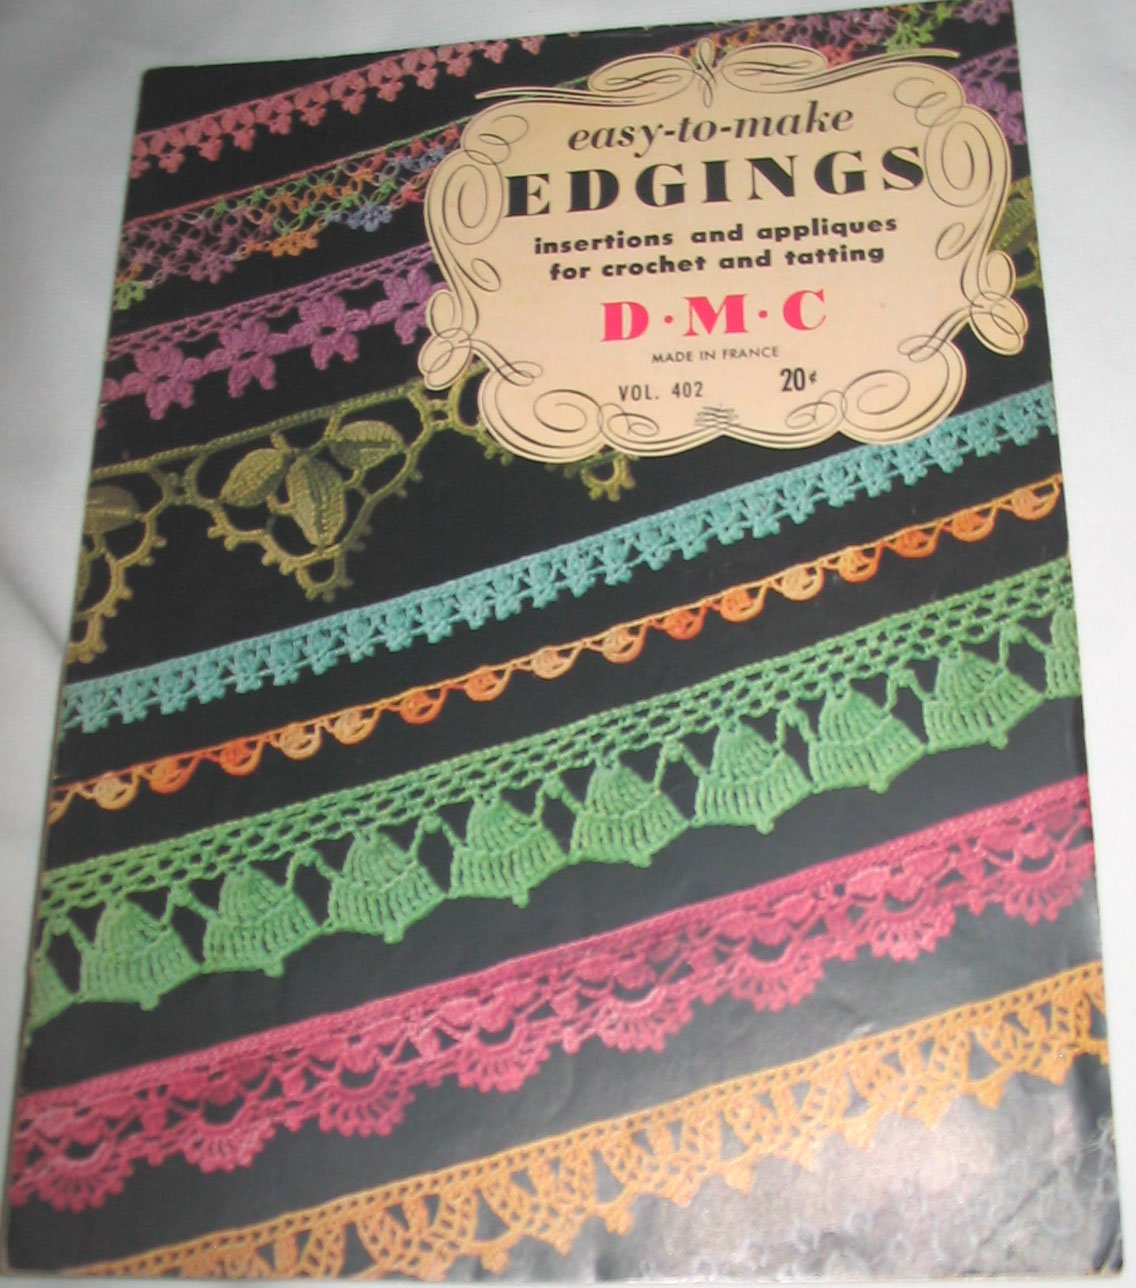 Easy-To-Make Edgings, Insertions and Appliques for Crochet and Tatting Volume 402